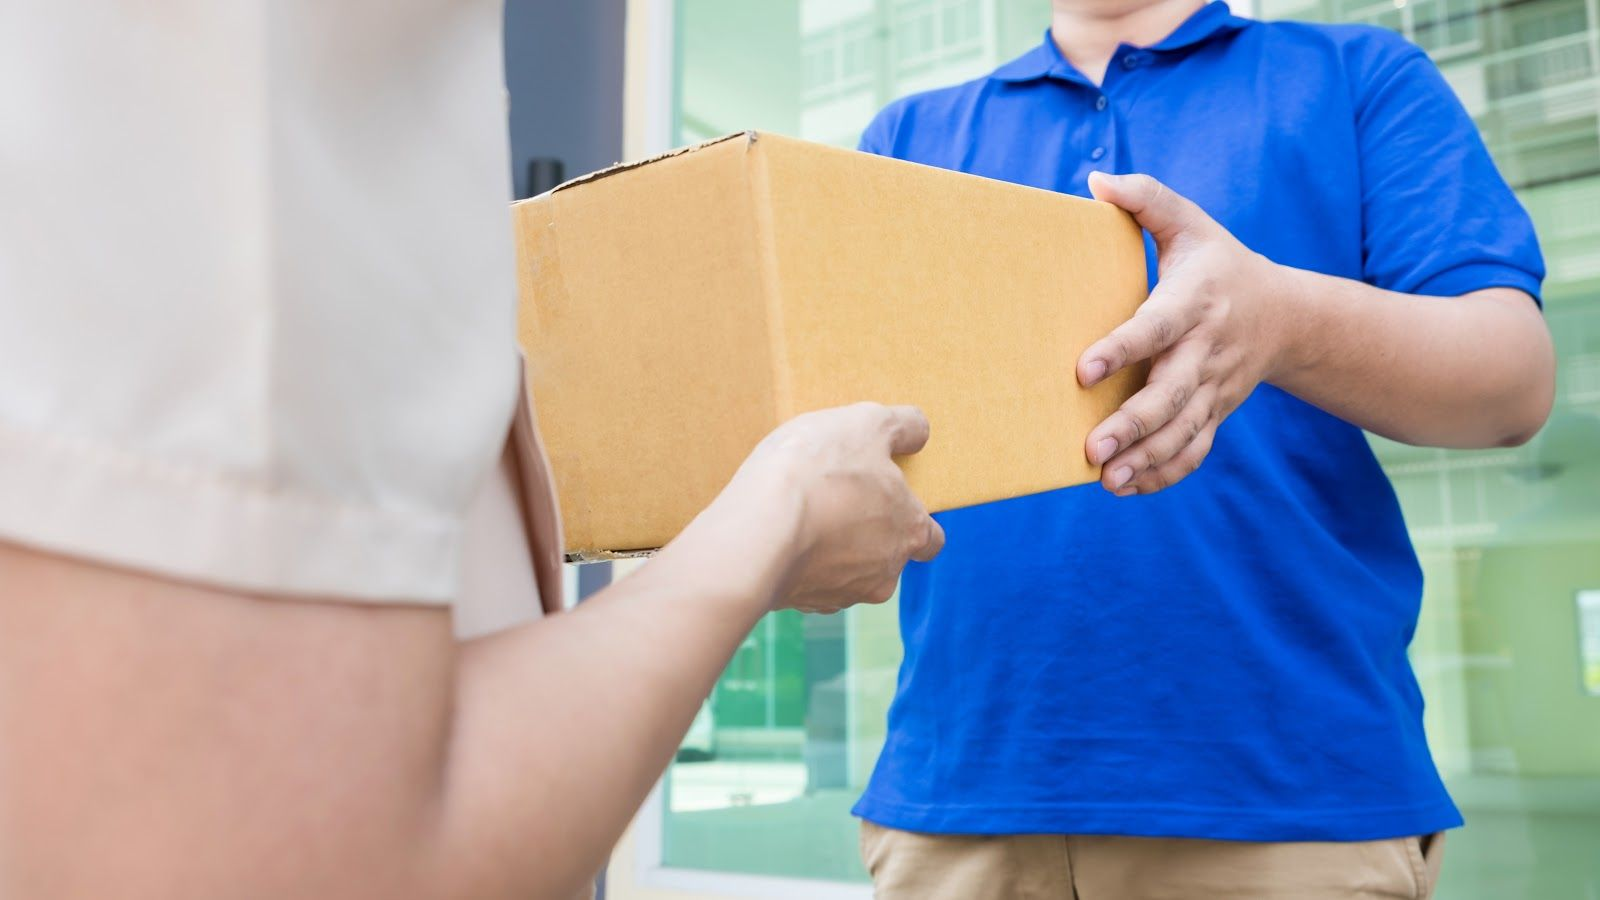 Fedex and UPS are top players when it comes to speed of delivery